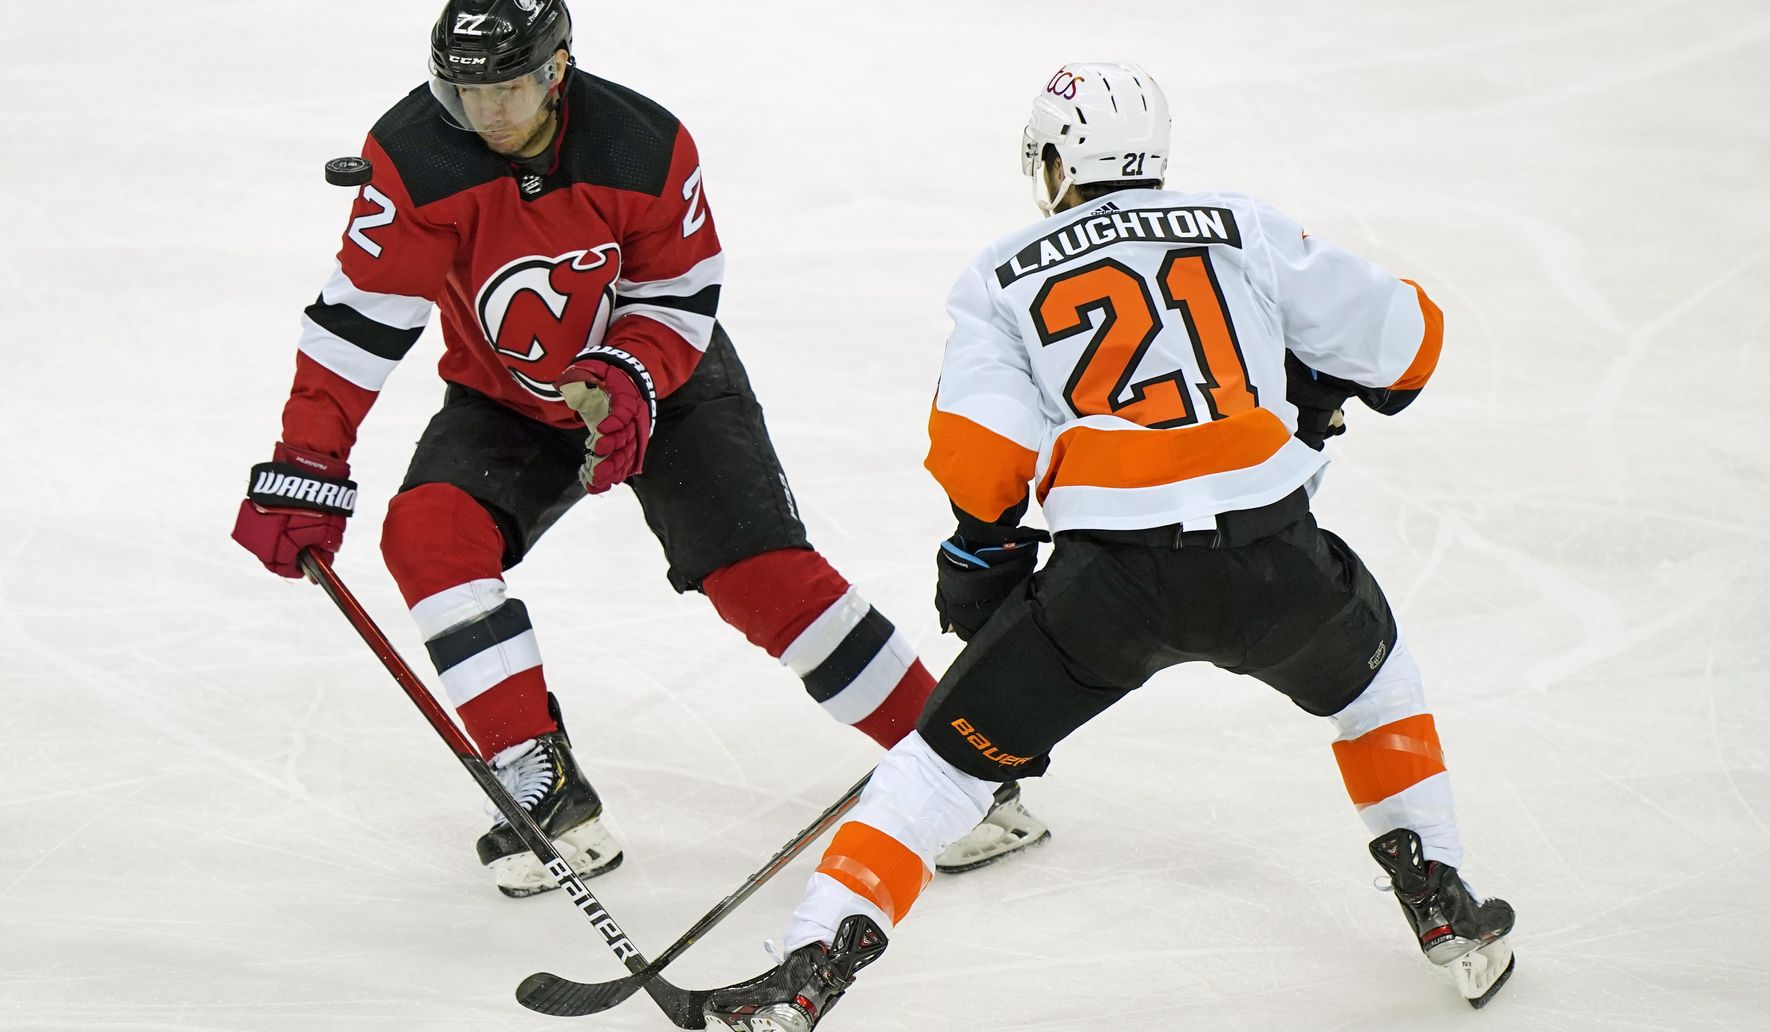 Flyers_devils_hockey_05642_c0-201-4823-3013_s1770x1032